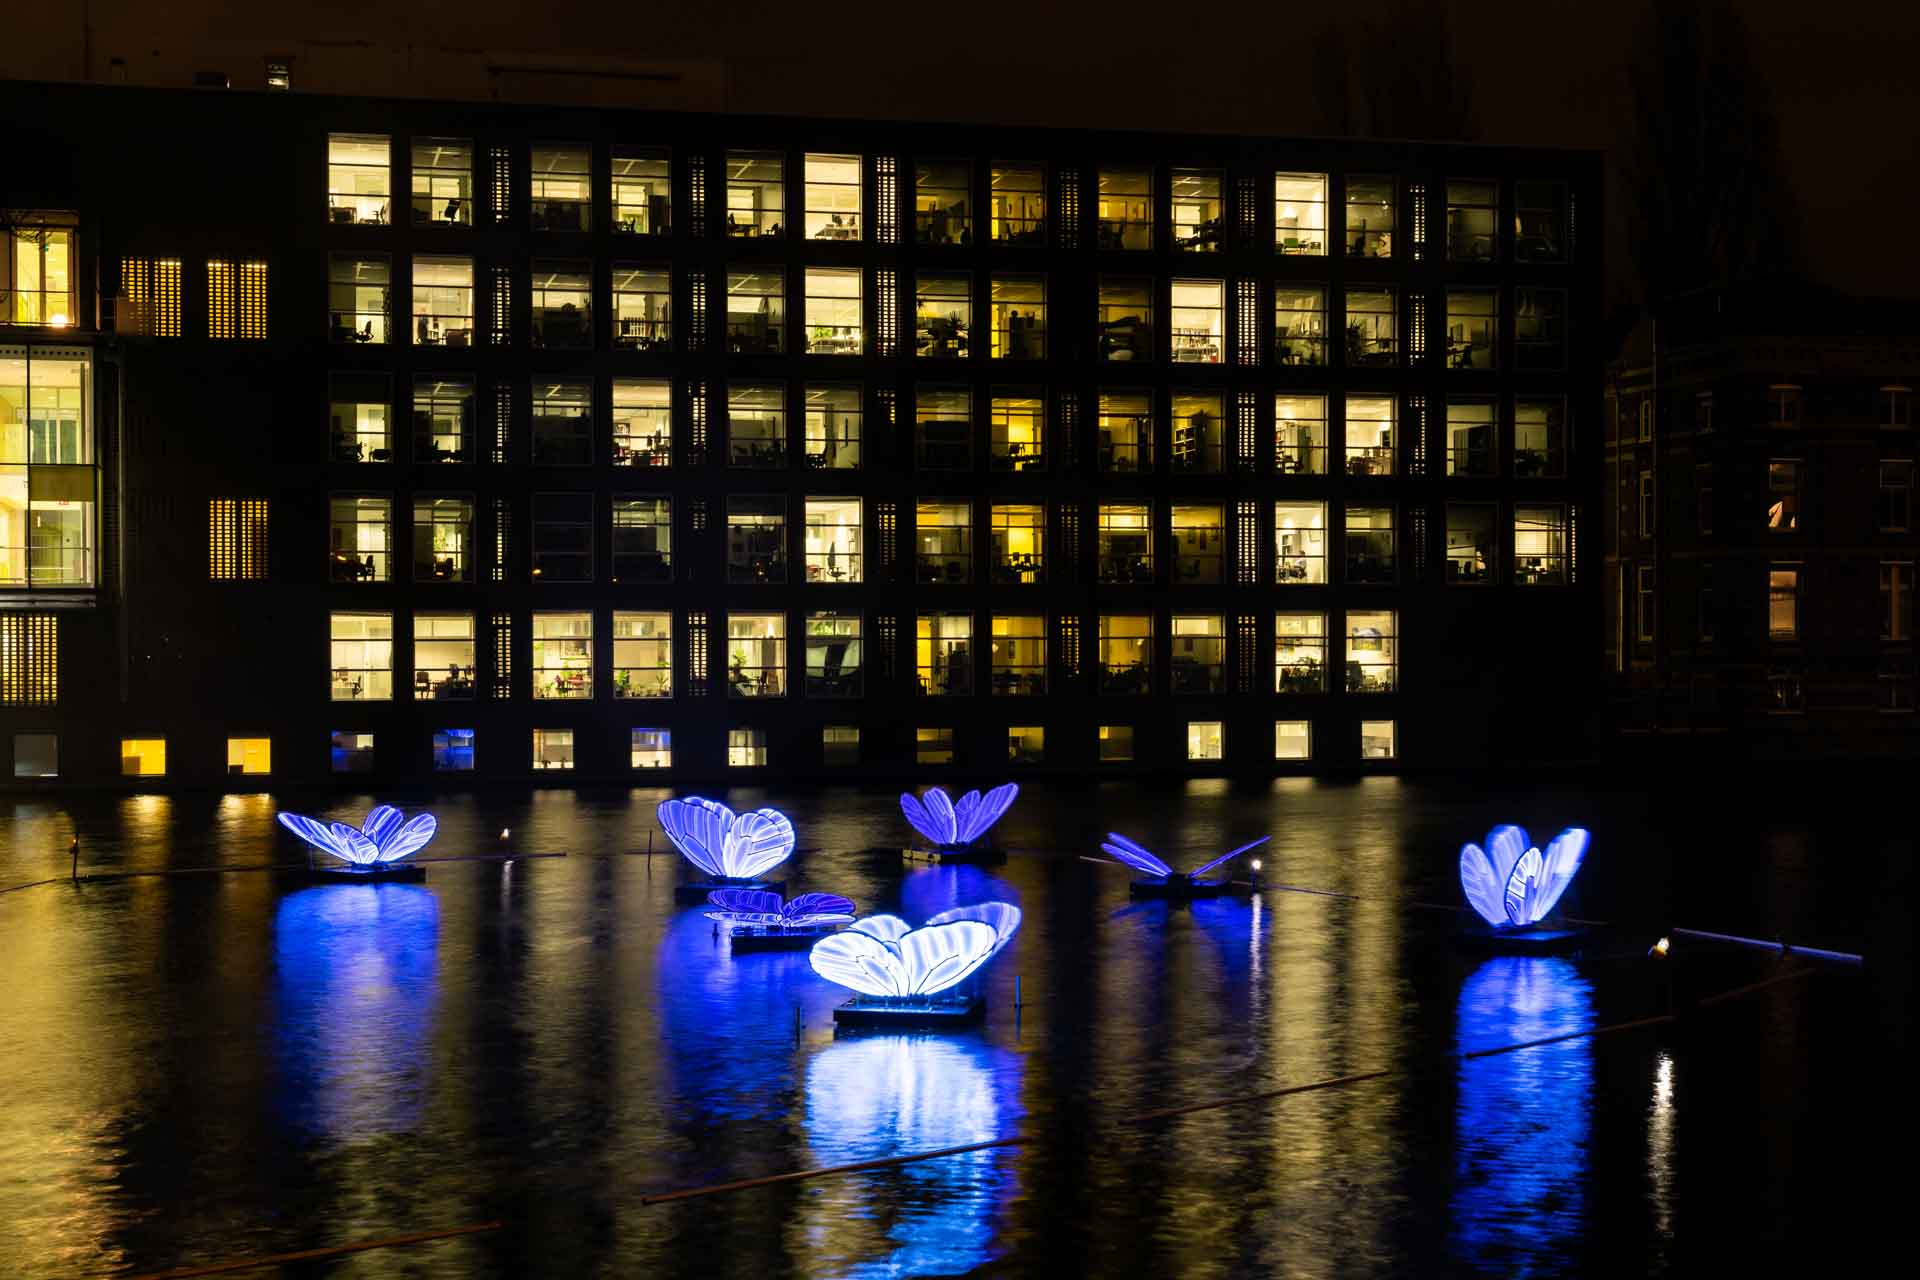 Amsterdam Light Festival 2019-2020